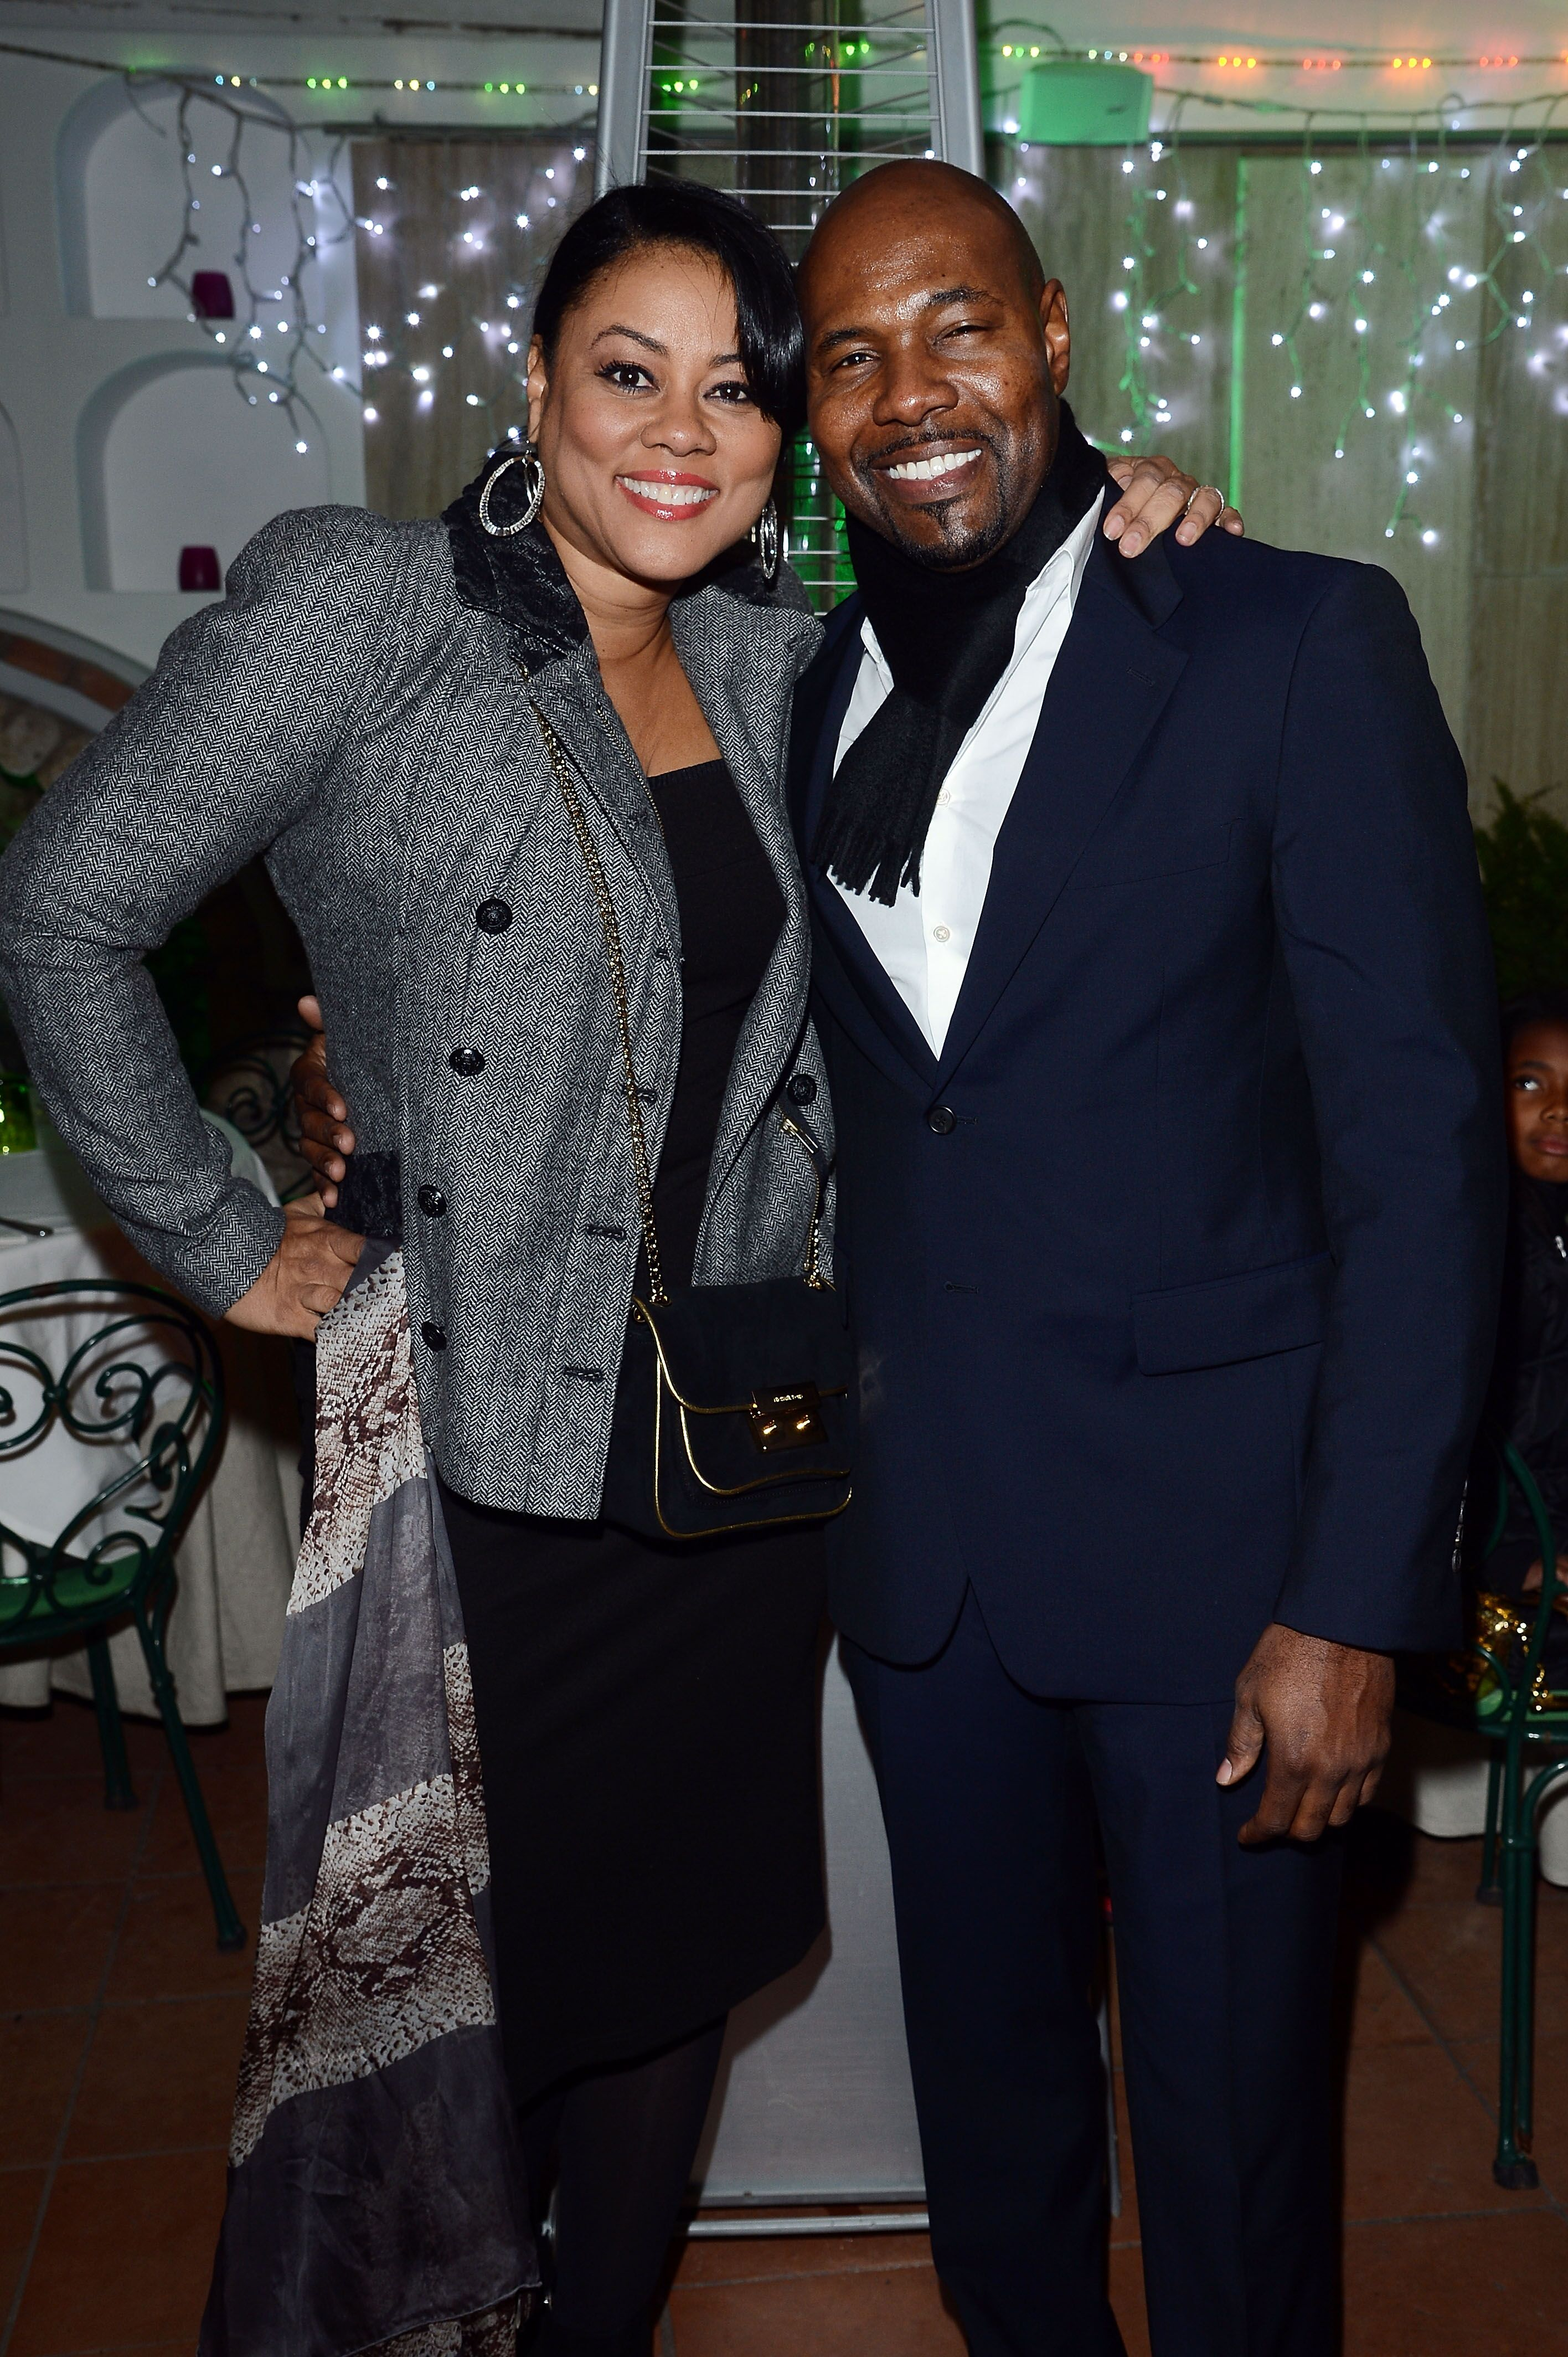 Antoine Fuqua and wife Lela Rochon/ Source: Getty Images